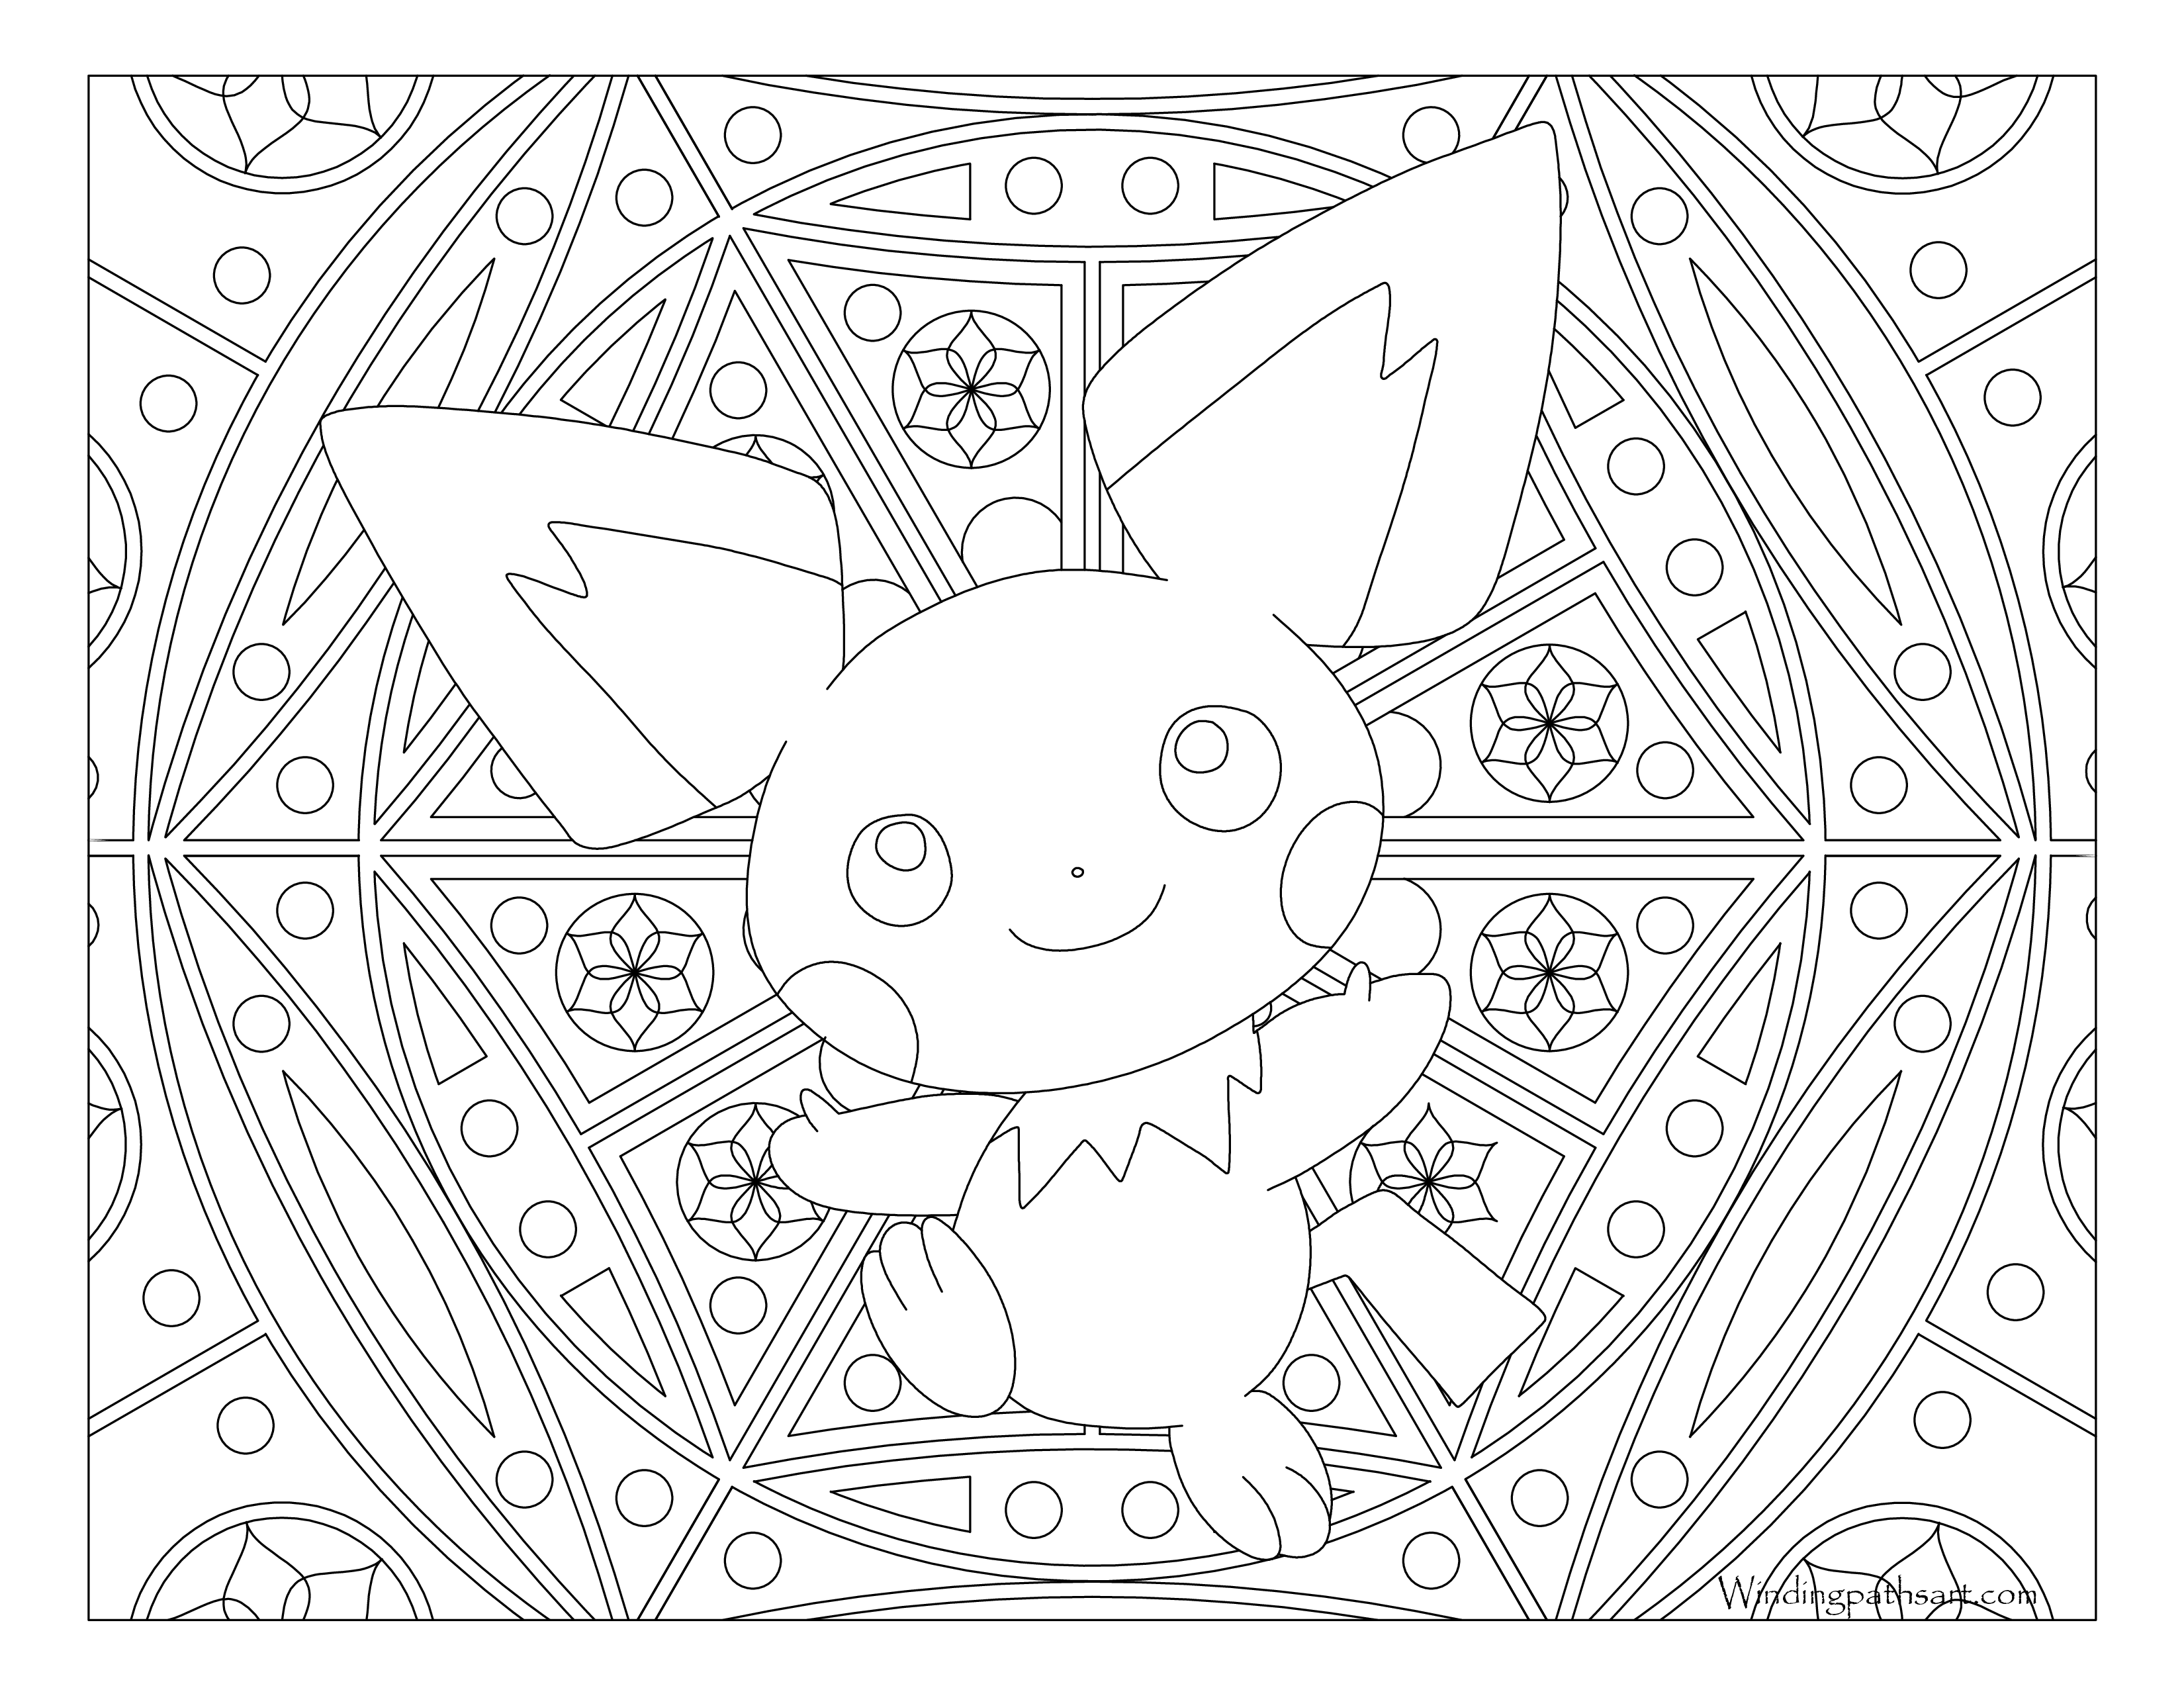 Teddiursa Coloring Pages At Getdrawings Com Free For Personal Use